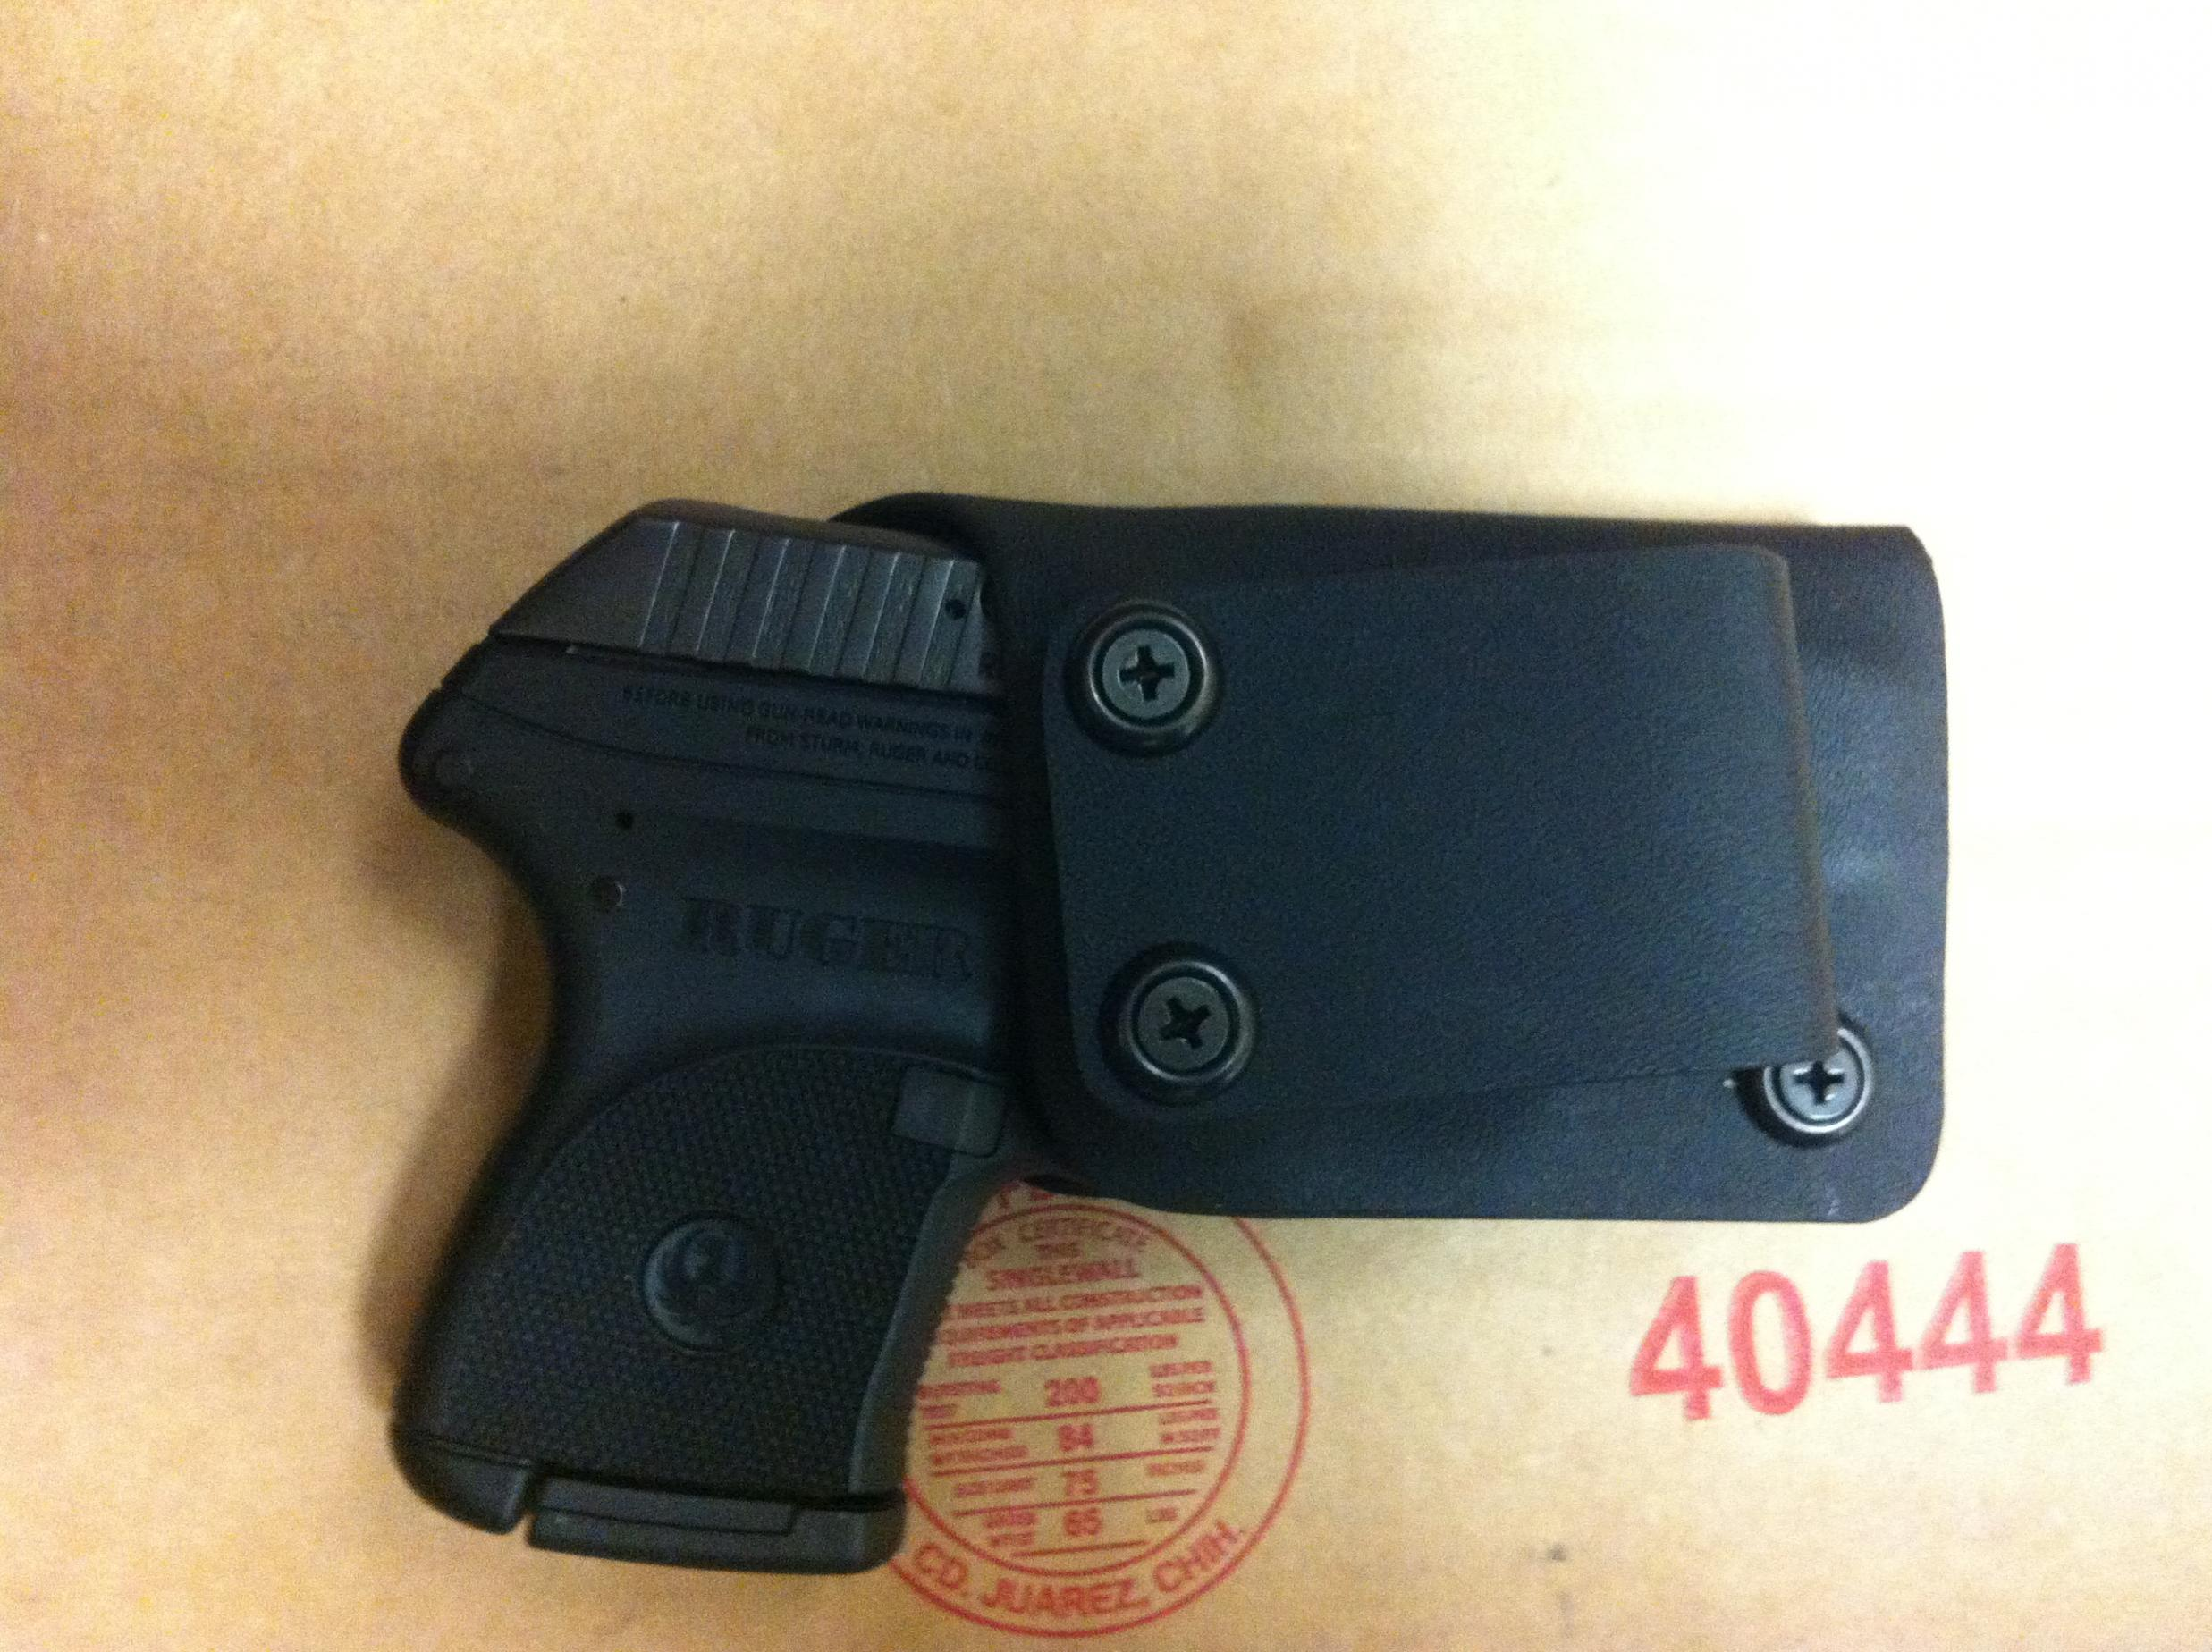 New holster arrived. Am I being too picky?-img_0430-1-.jpg